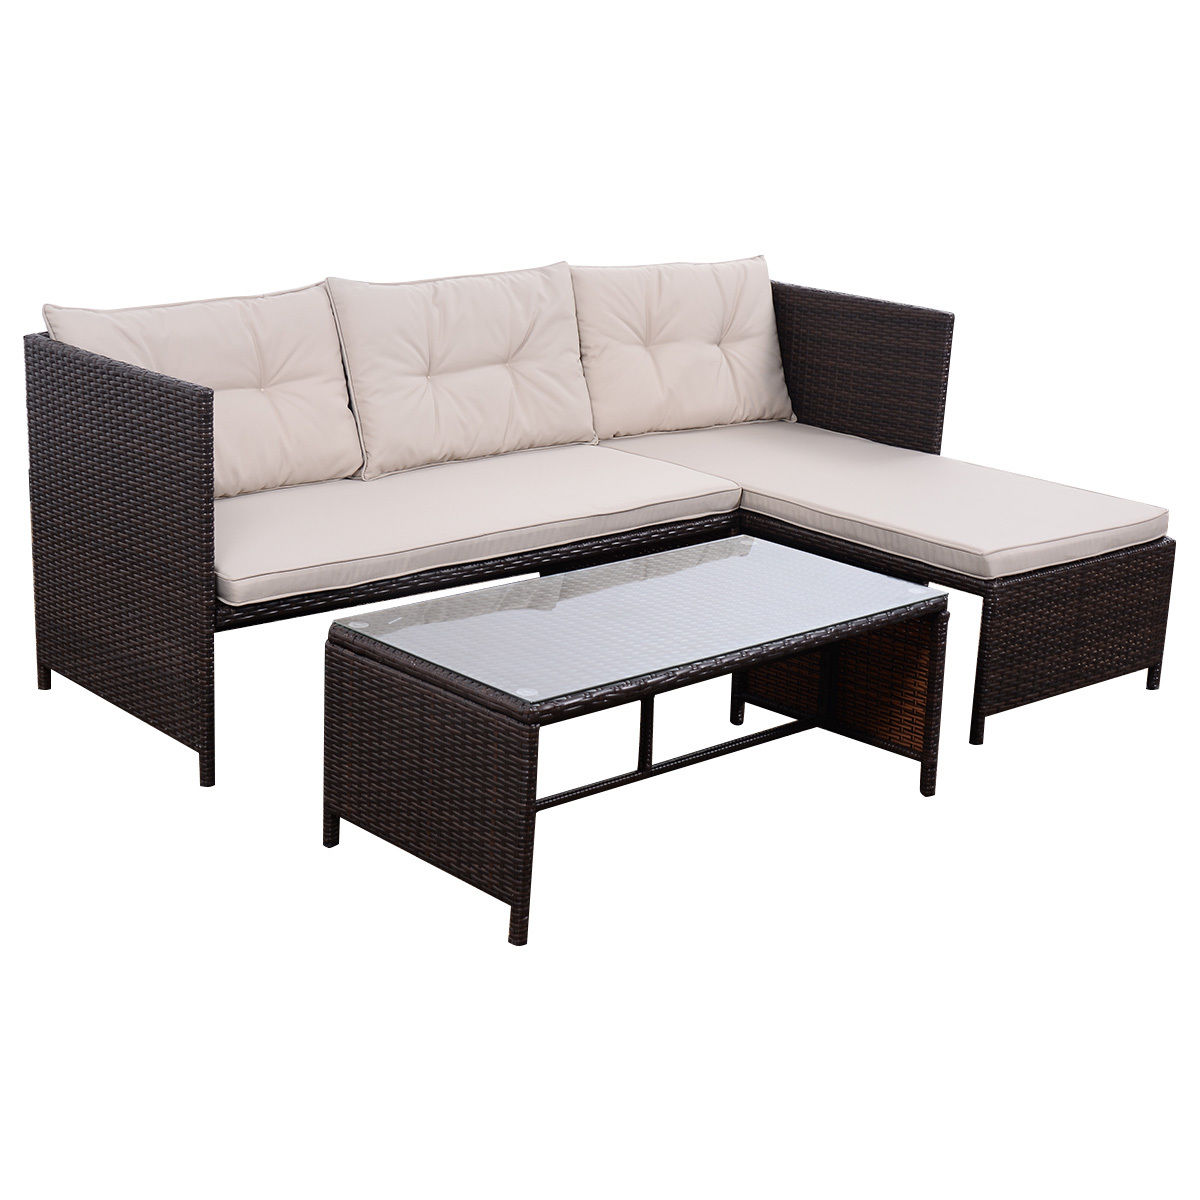 Costway 3 PCS Outdoor Rattan Furniture Sofa Set Lounge Chaise Cushioned Patio Garden New by Costway